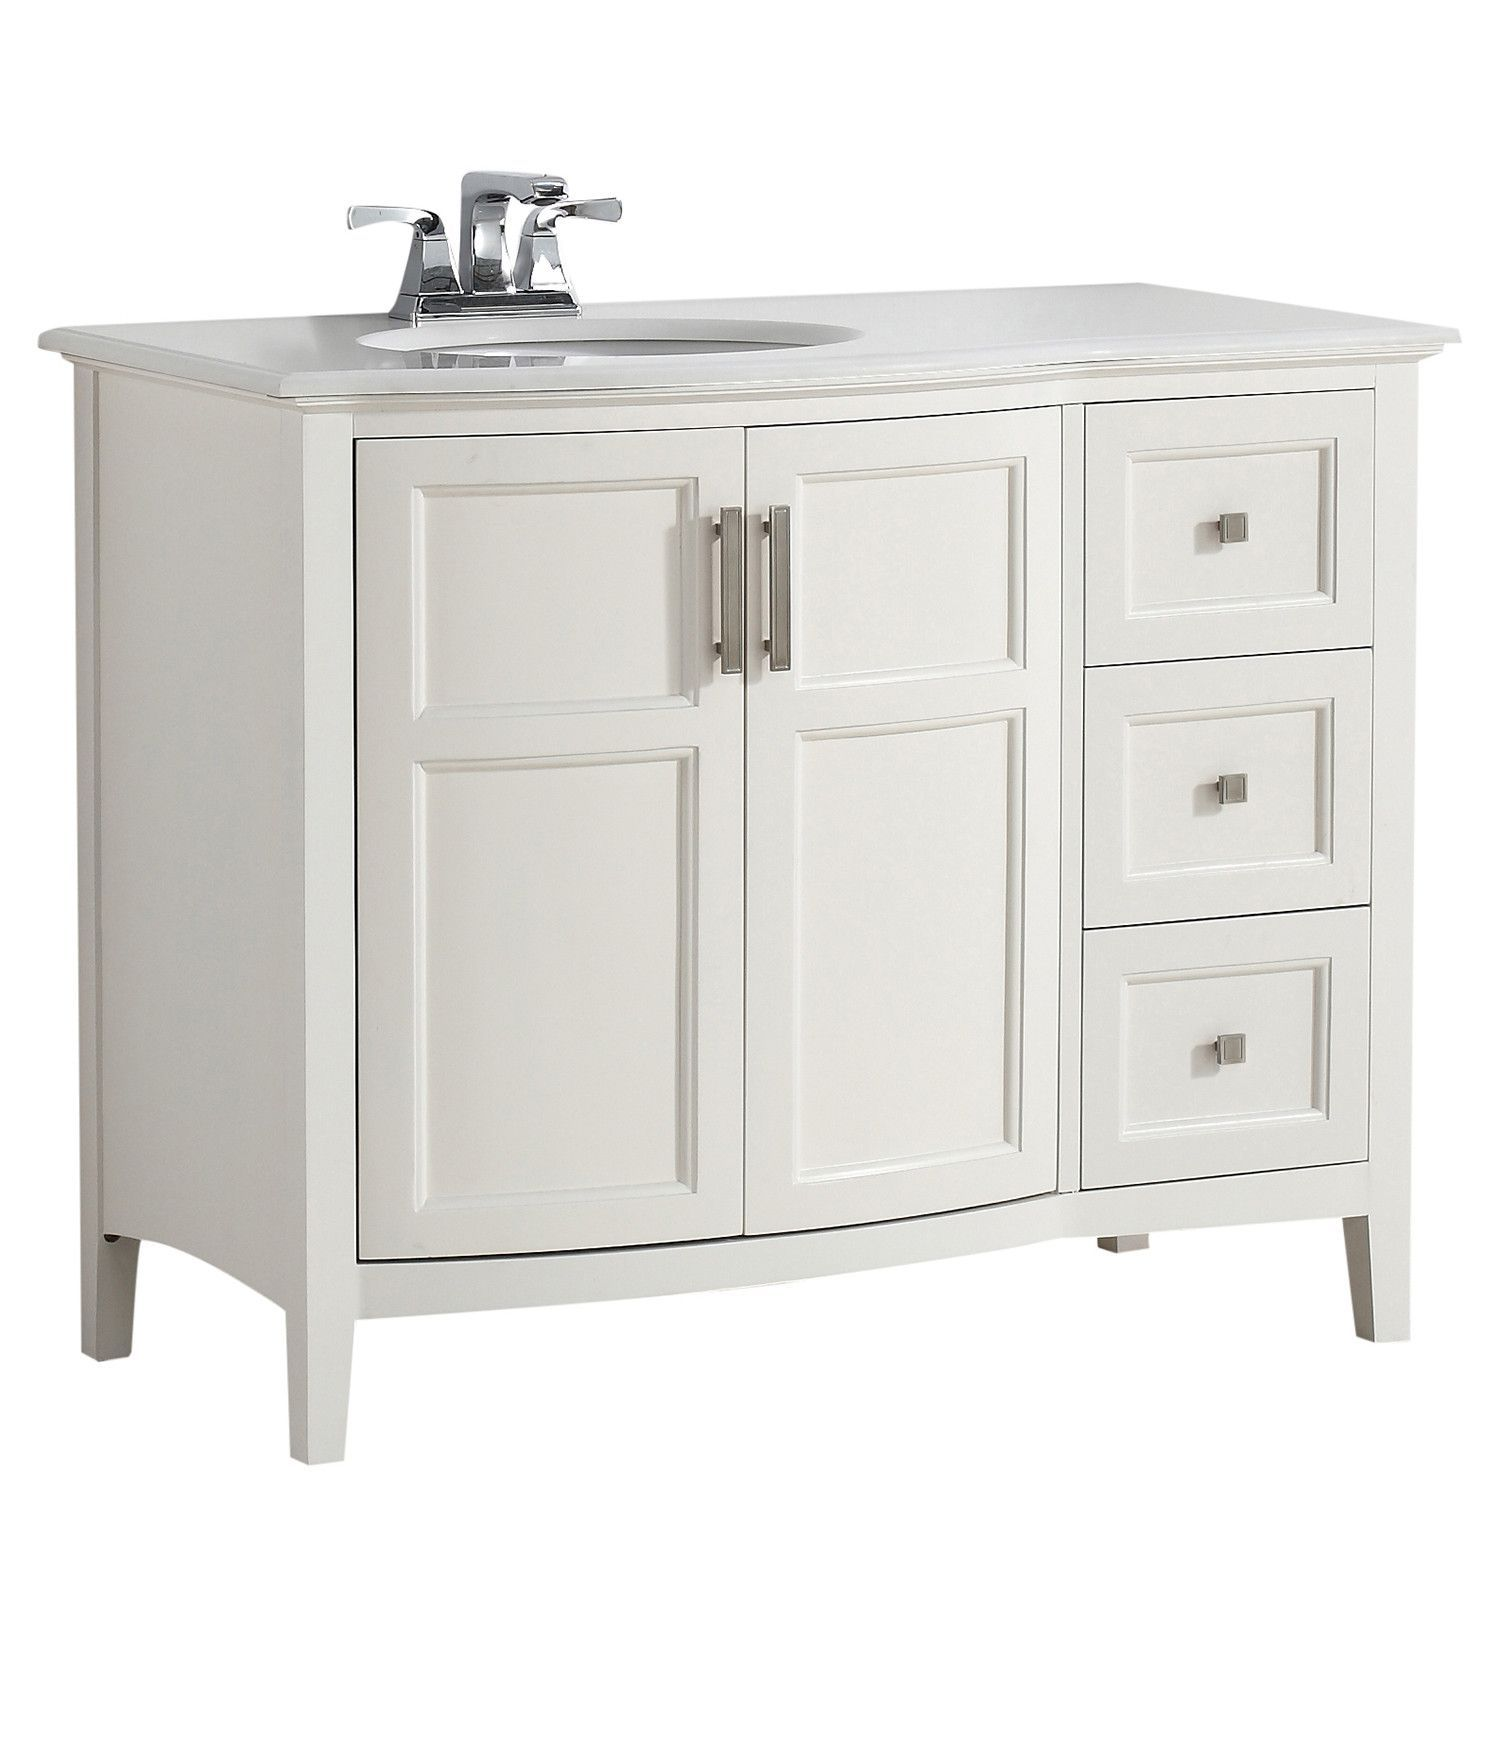 42 inch Winston Soft White Bath Vanity with Rounded Front